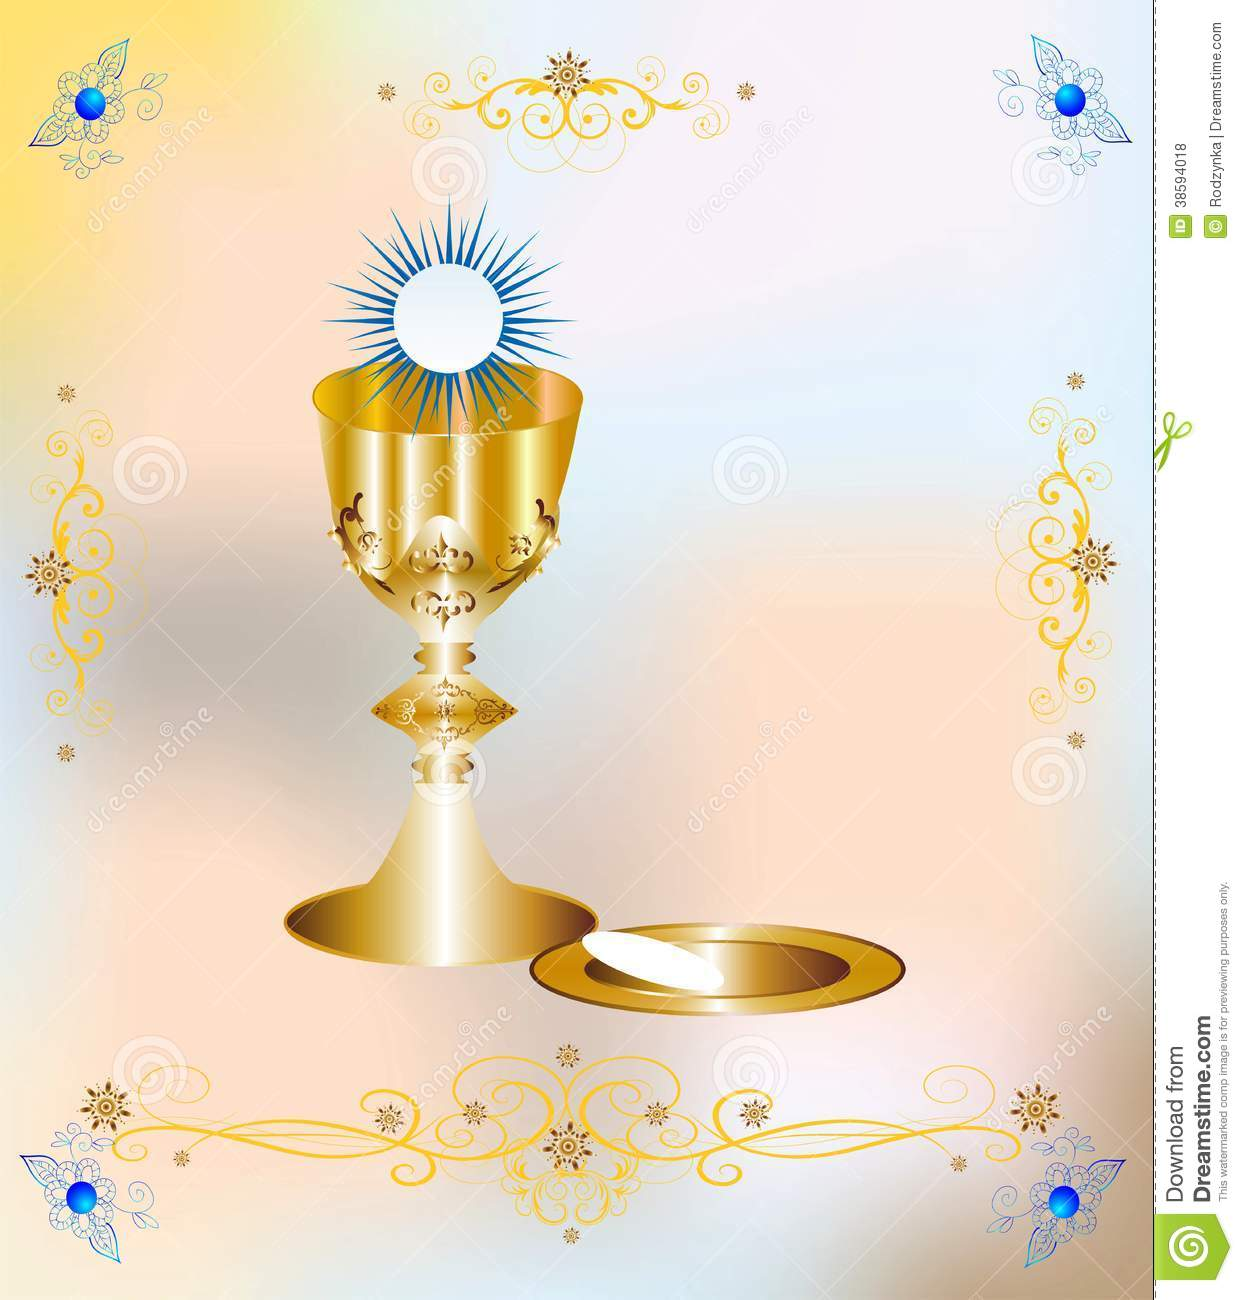 Background with characteristic symbols of holy communion